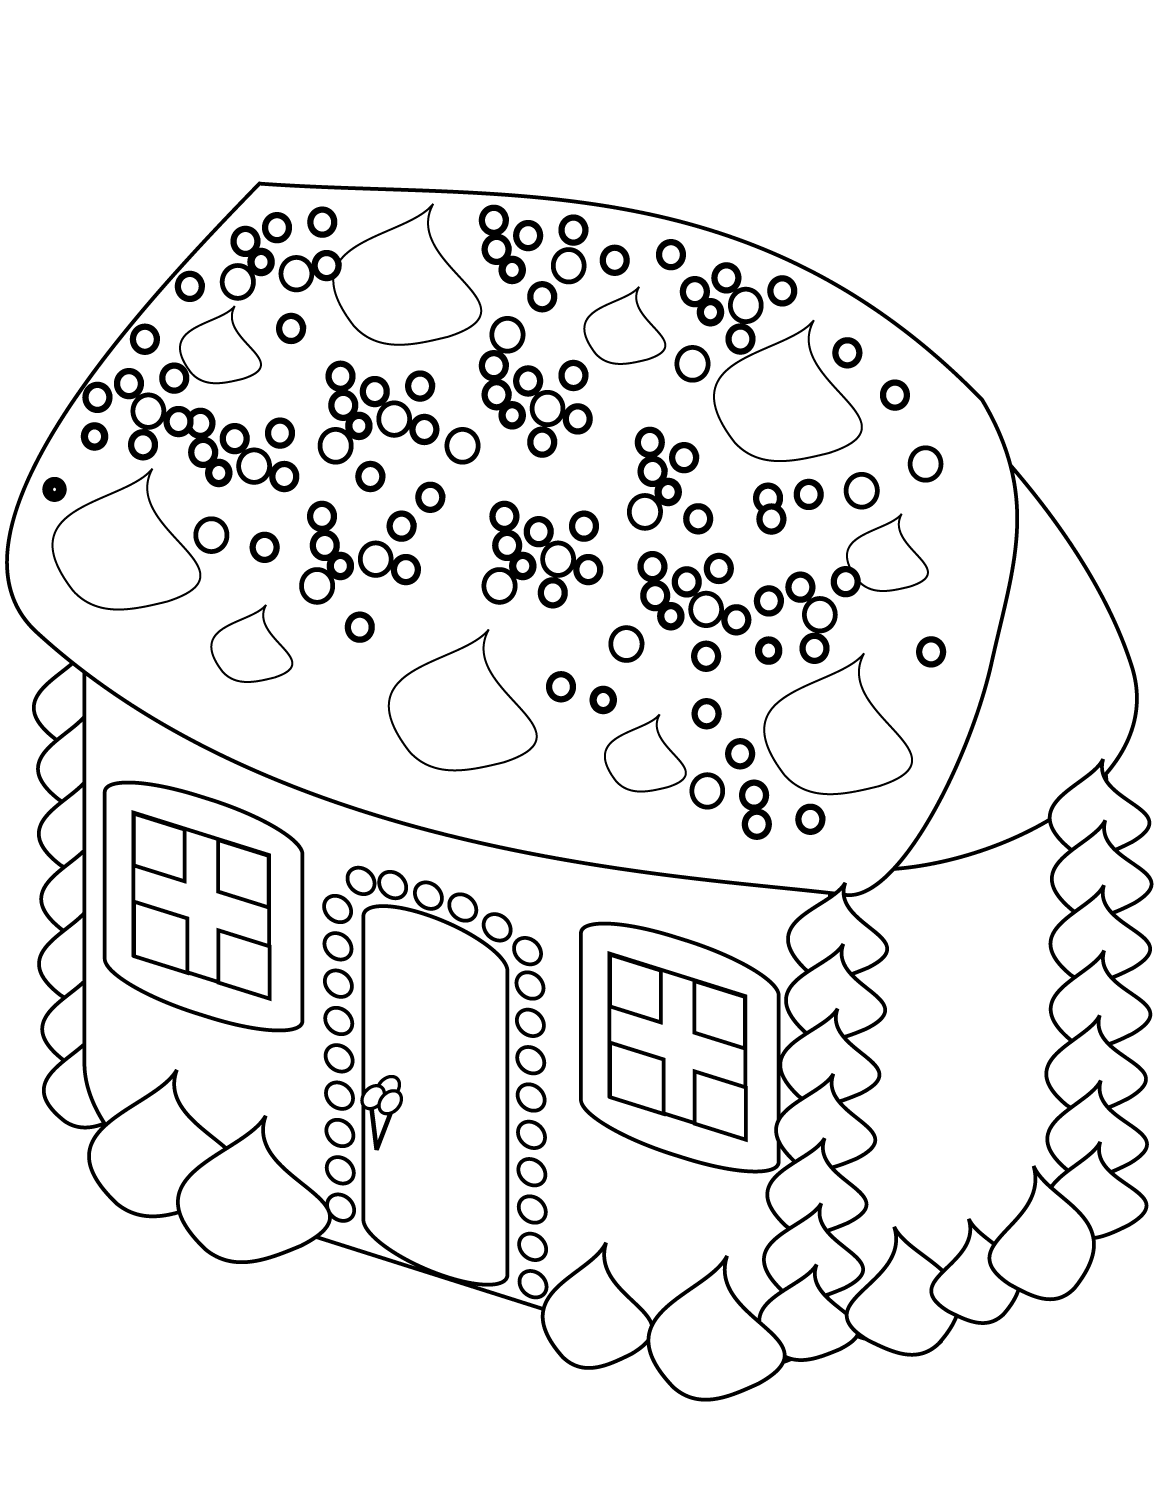 gingerbread house coloring sheet gingerbread house coloring pages to download and print for sheet house coloring gingerbread